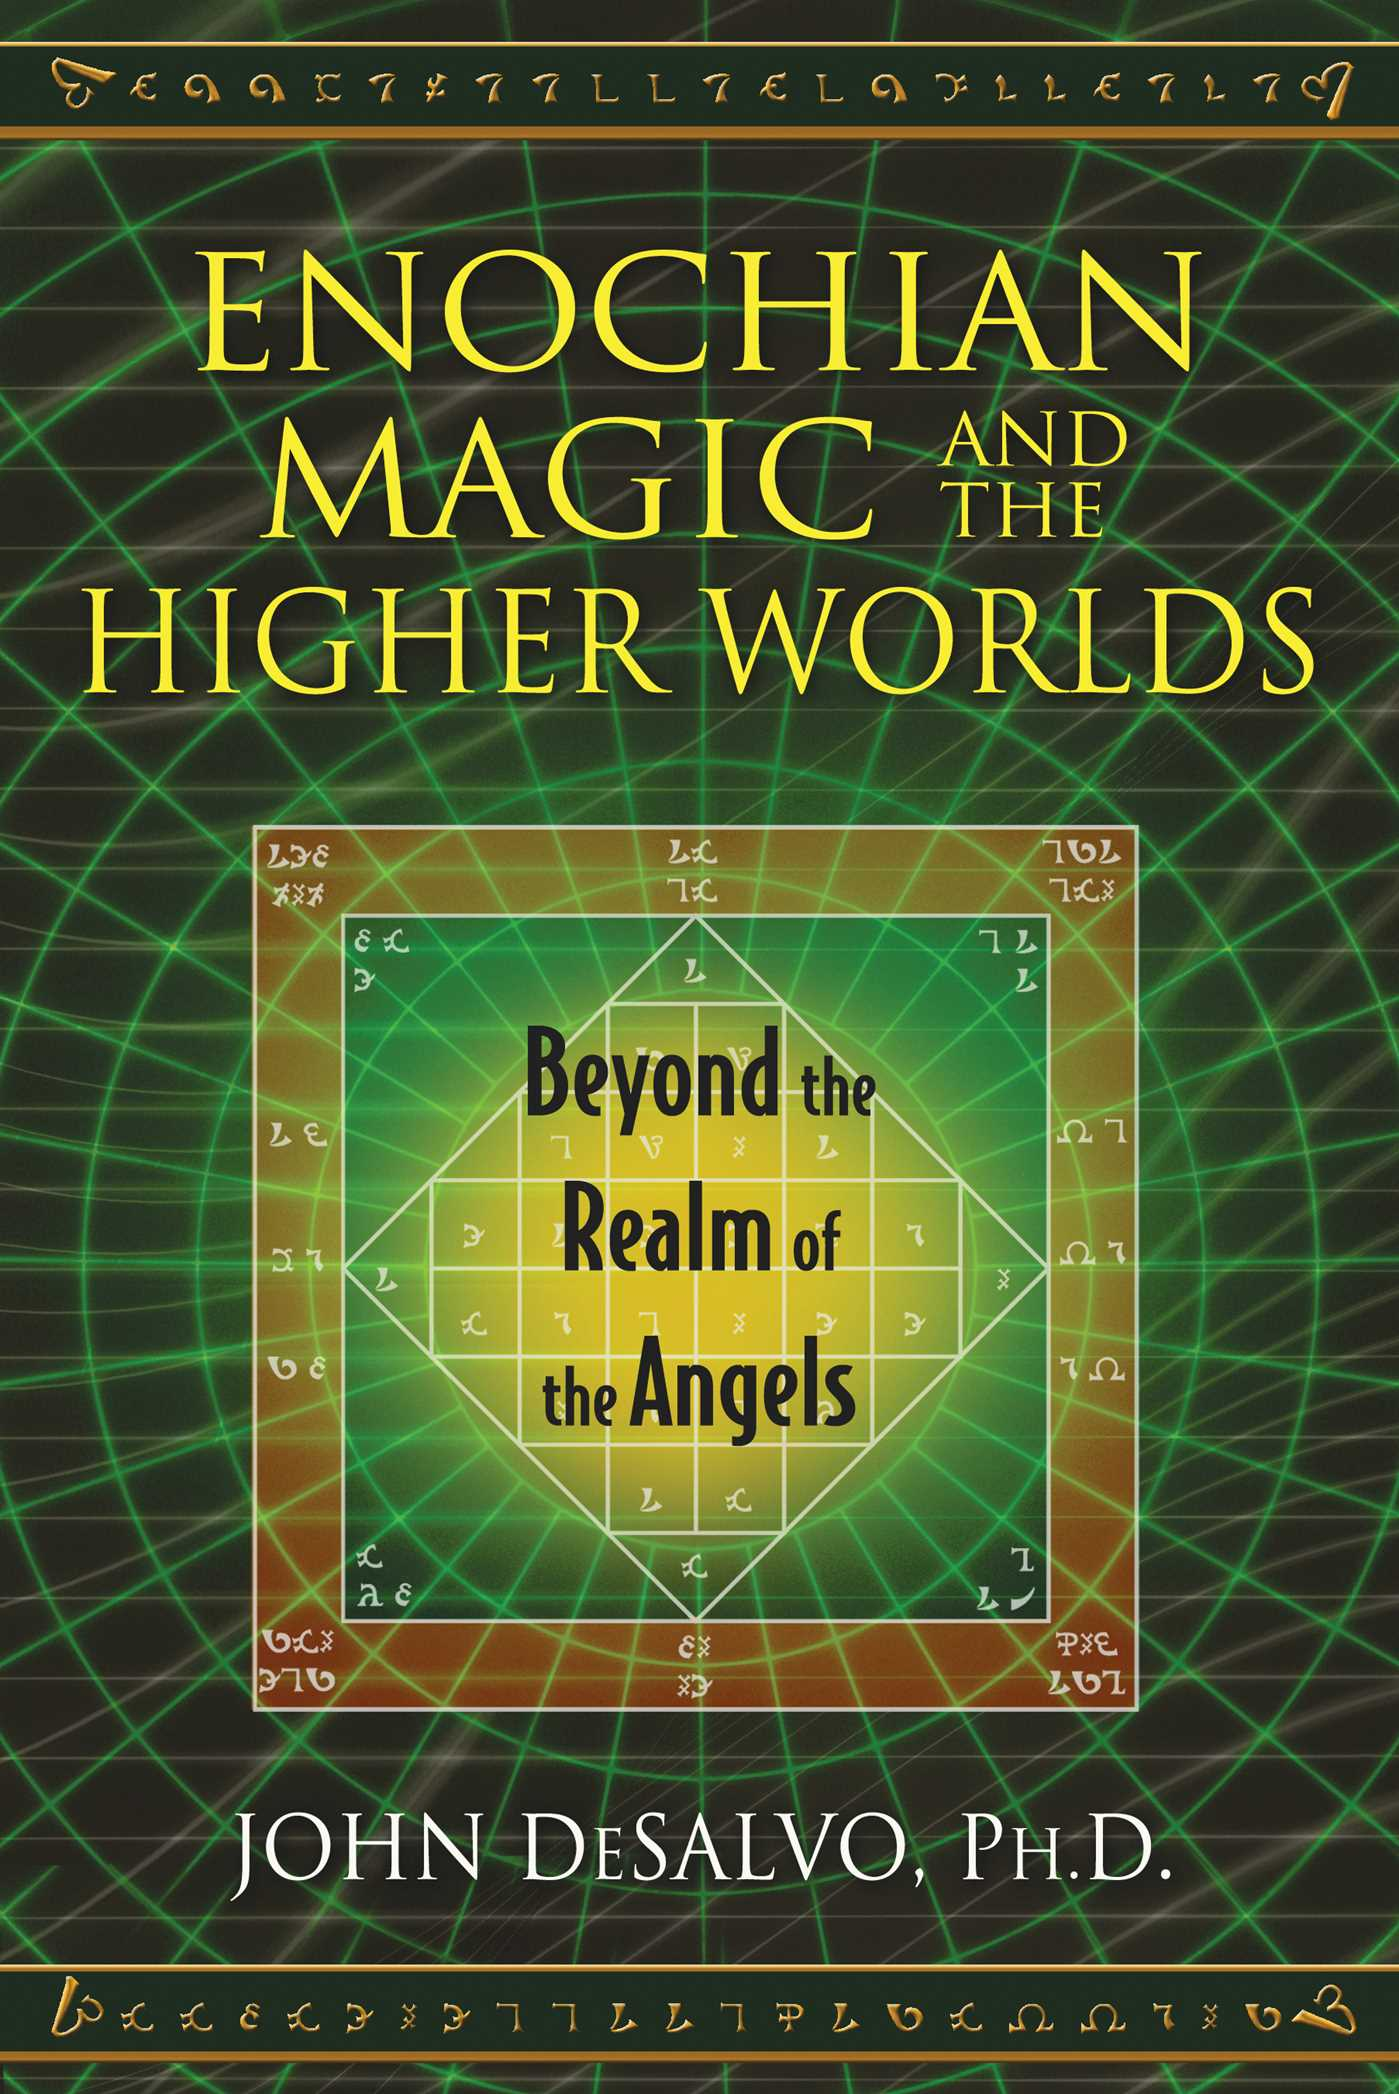 Enochian Magic And The Higher Worlds Book By John